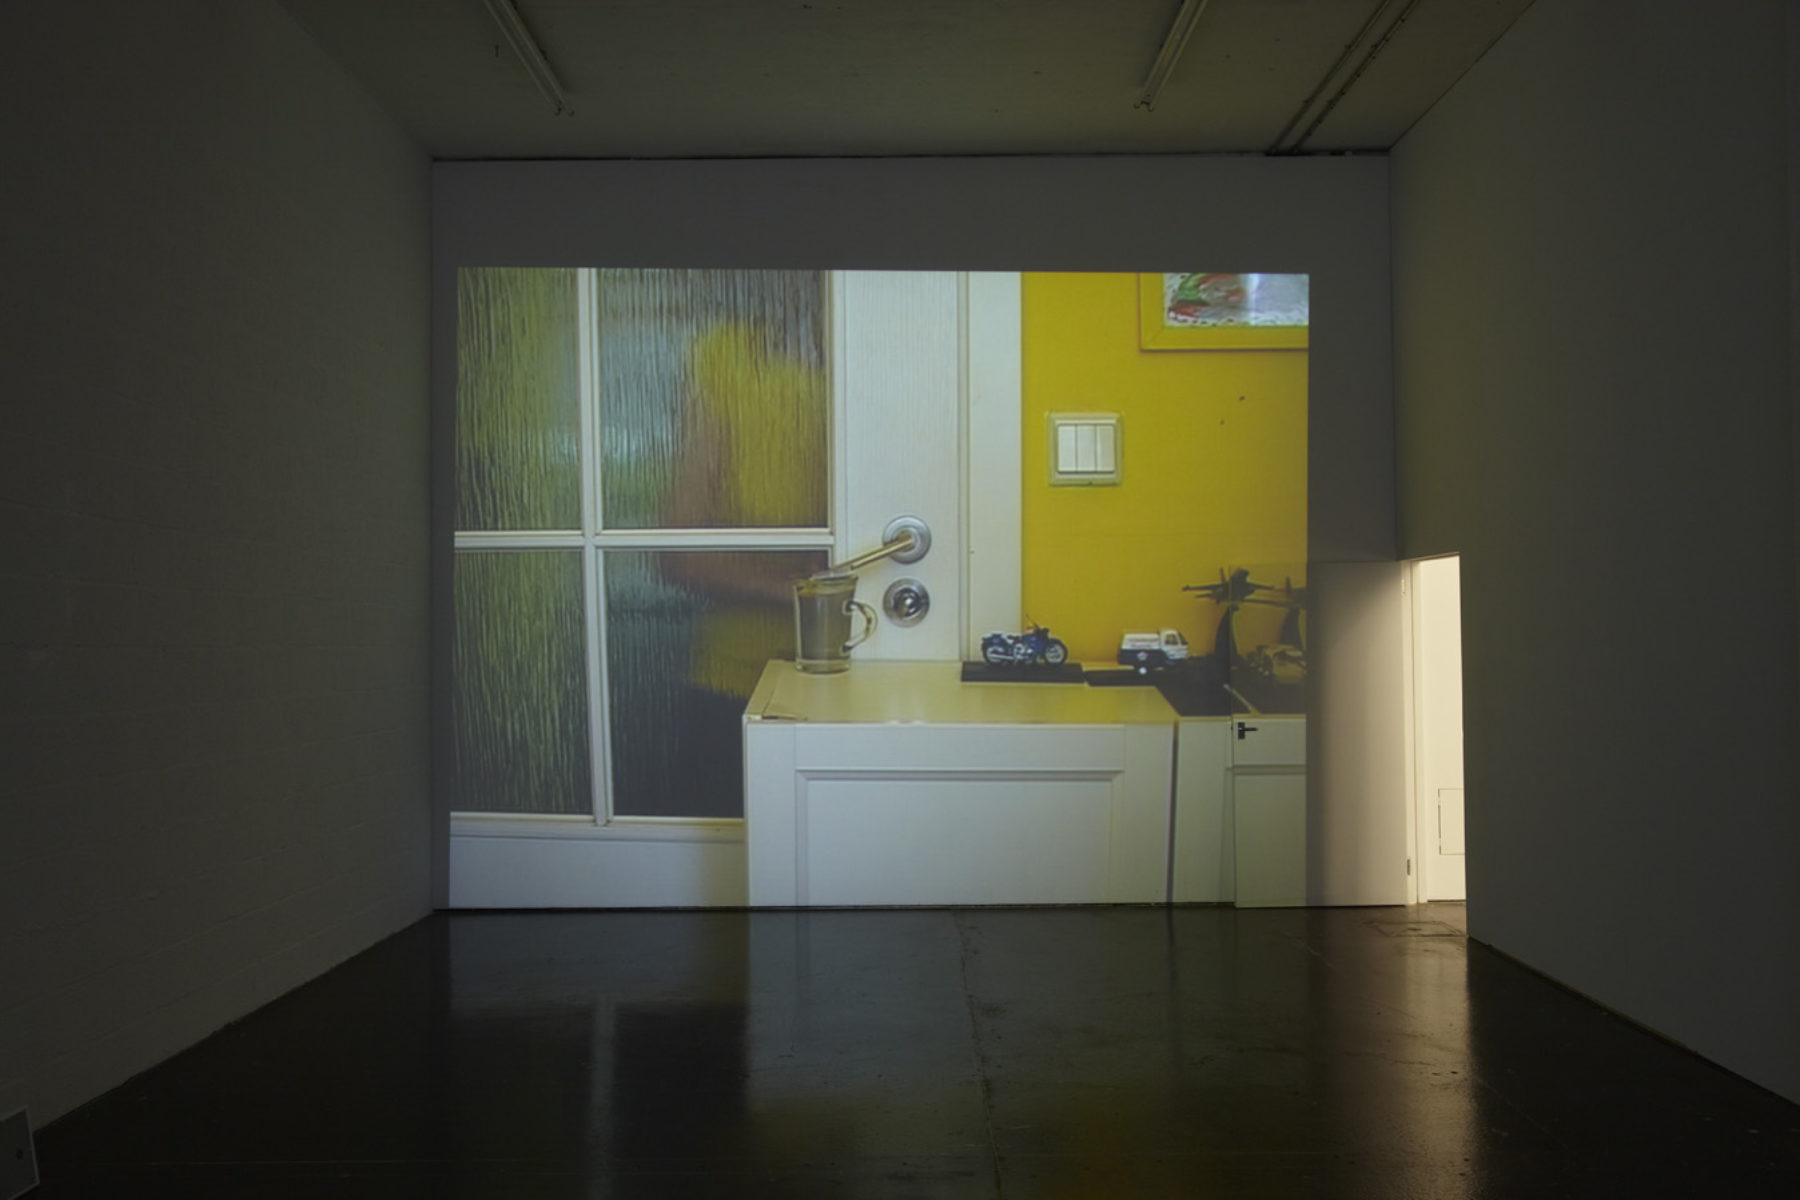 Installation view of Cezary Bodzianowski, Tea Back (2011). A projection of a domestic scene.